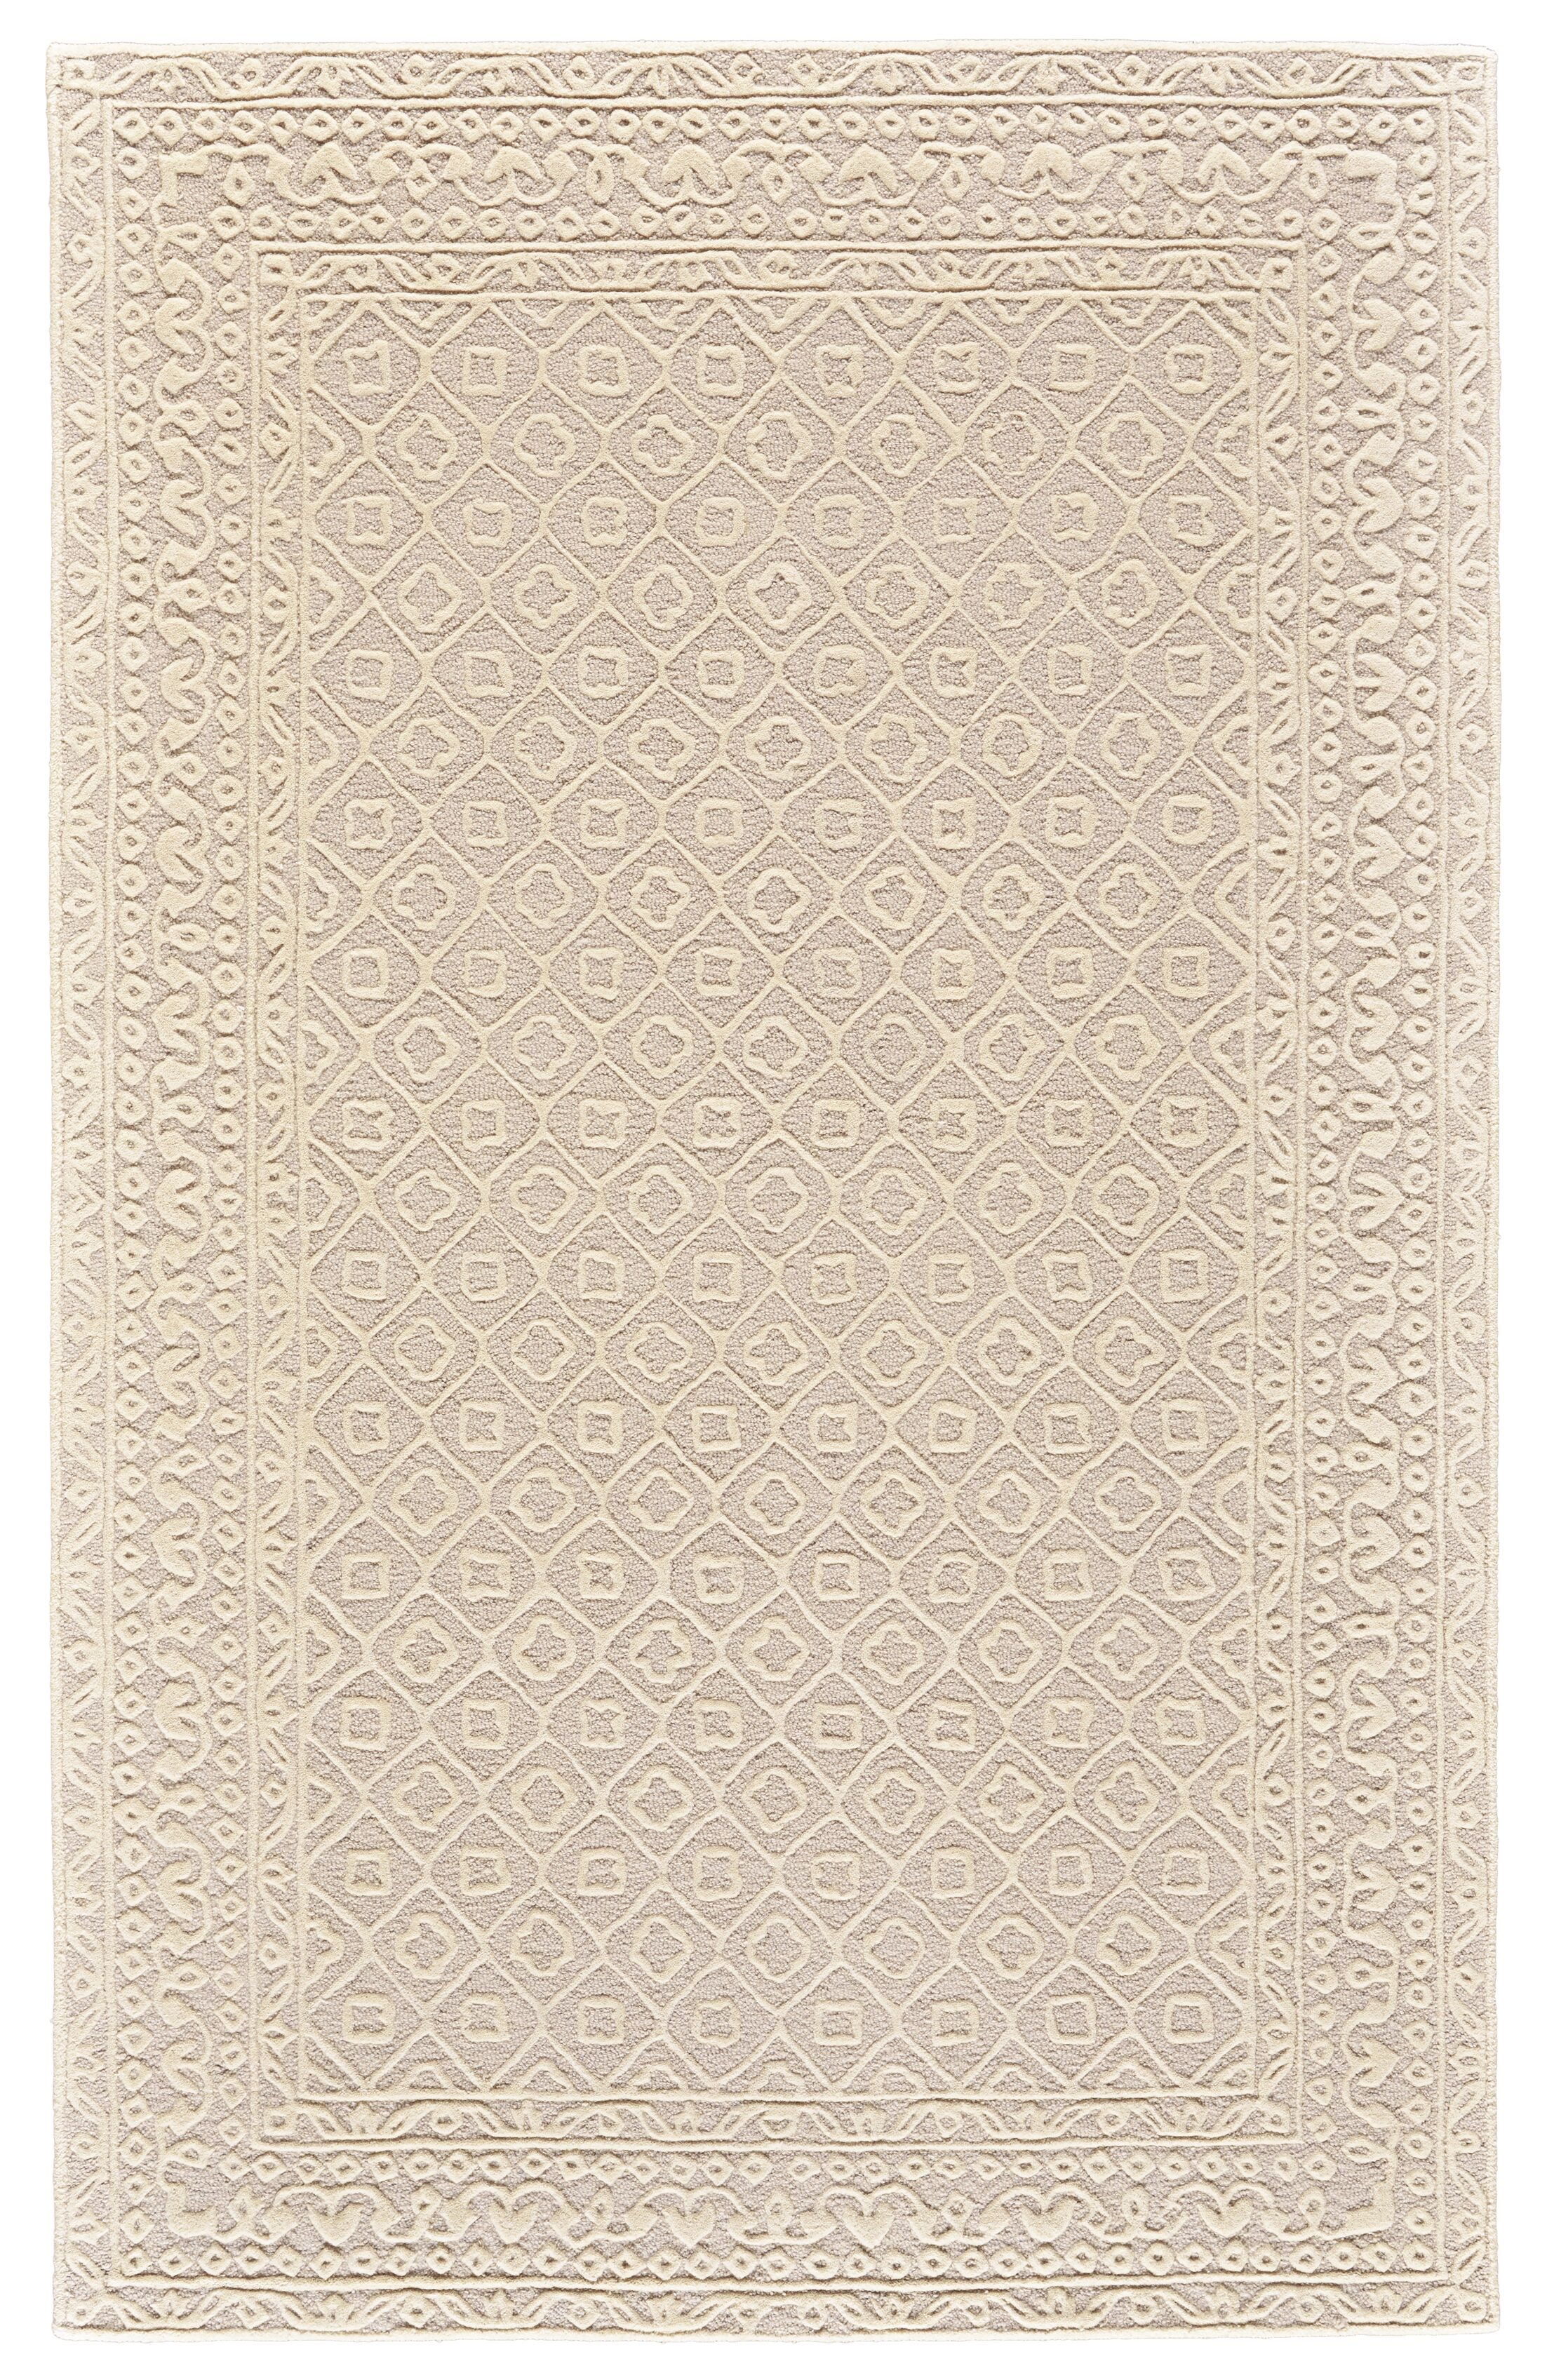 Griego Hand-Tufted Wool Light Beige/Ivory Area Rug Rug Size: Rectangle 5' x 8'